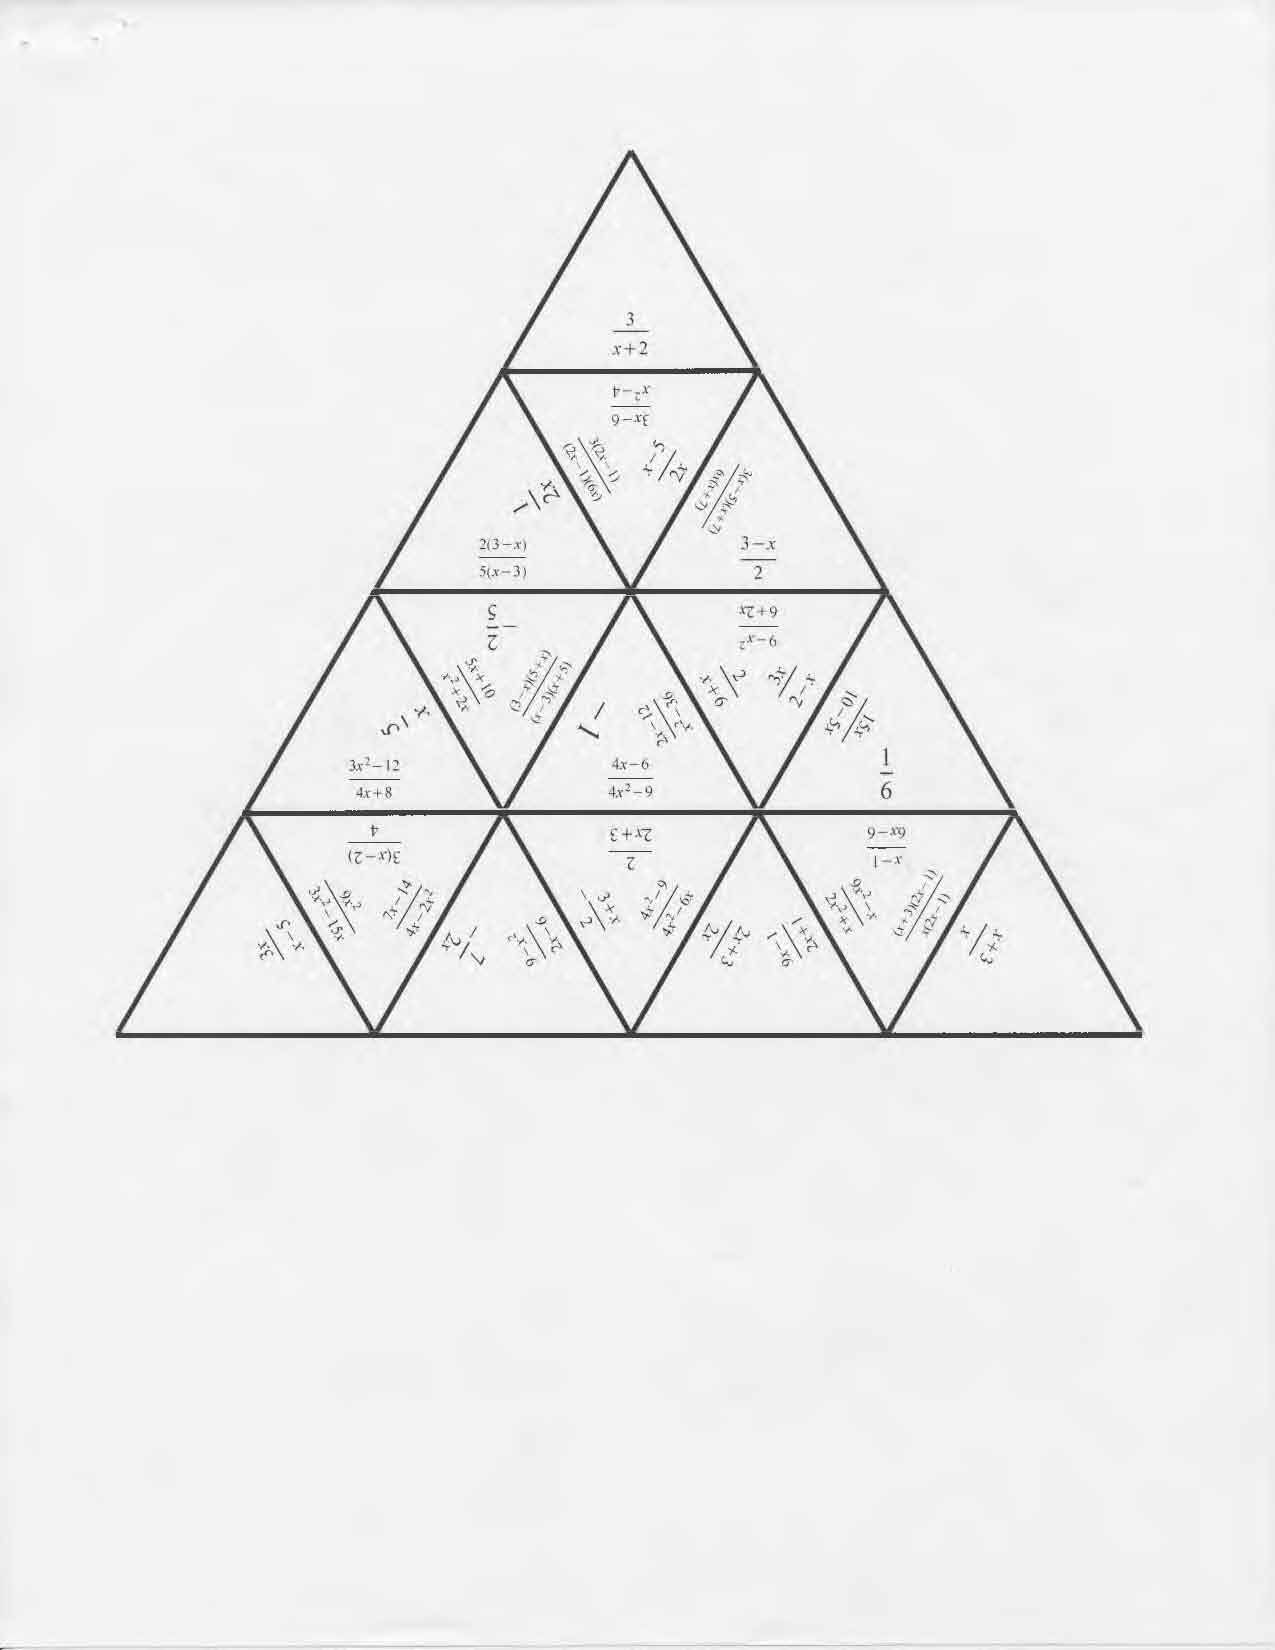 Tarsia Puzzle Simplify Rational Expressions Rational Expressions Simplifying Rational Expressions Expressions